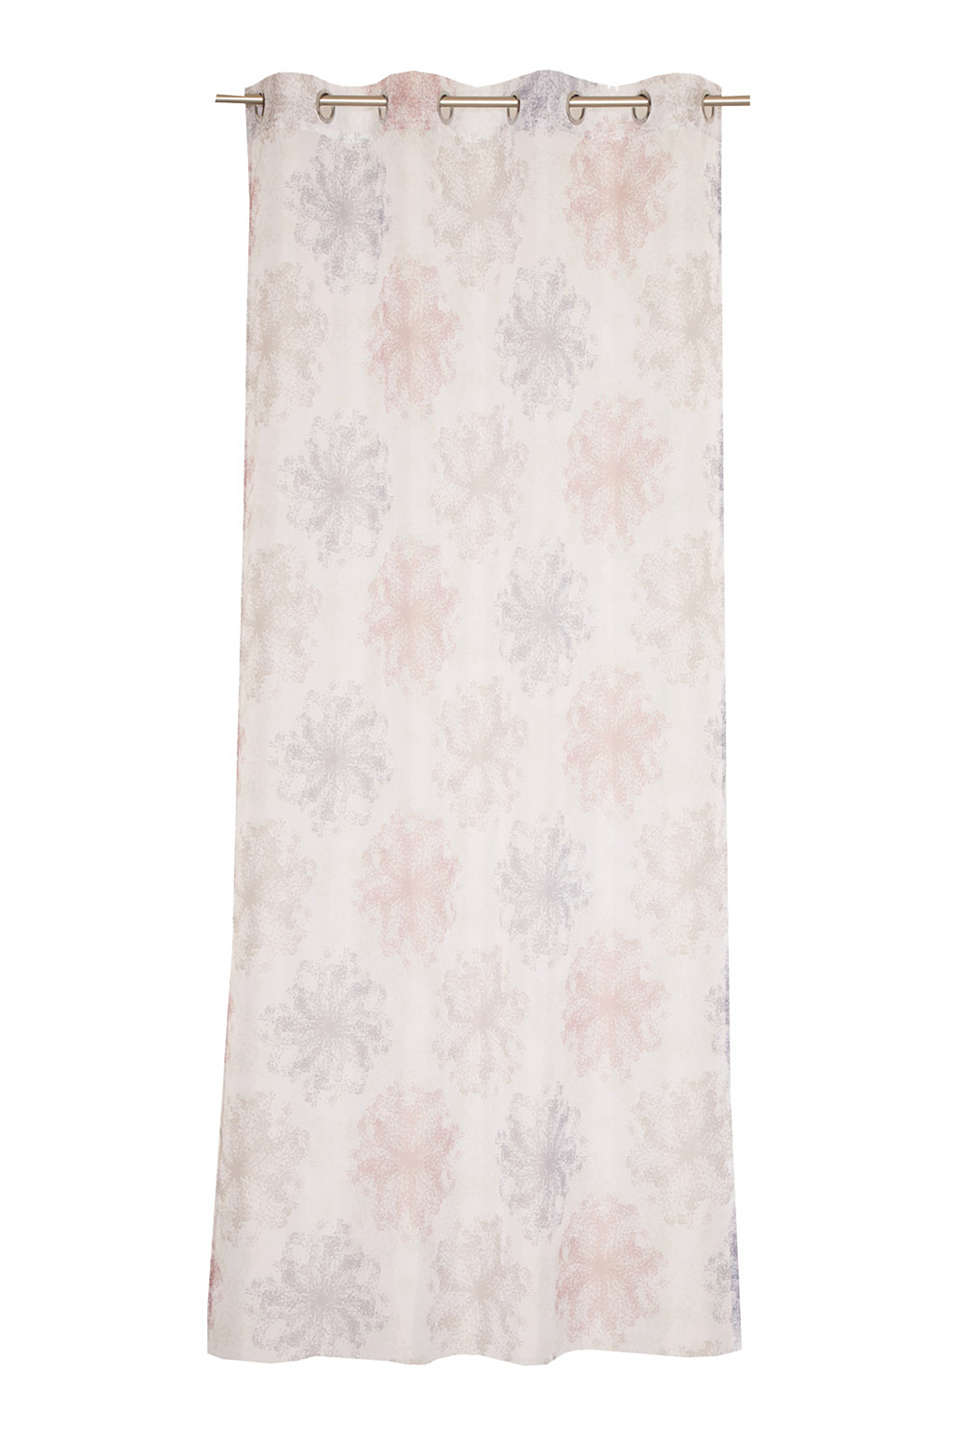 Esprit - Delicate, printed voile eyelet curtain